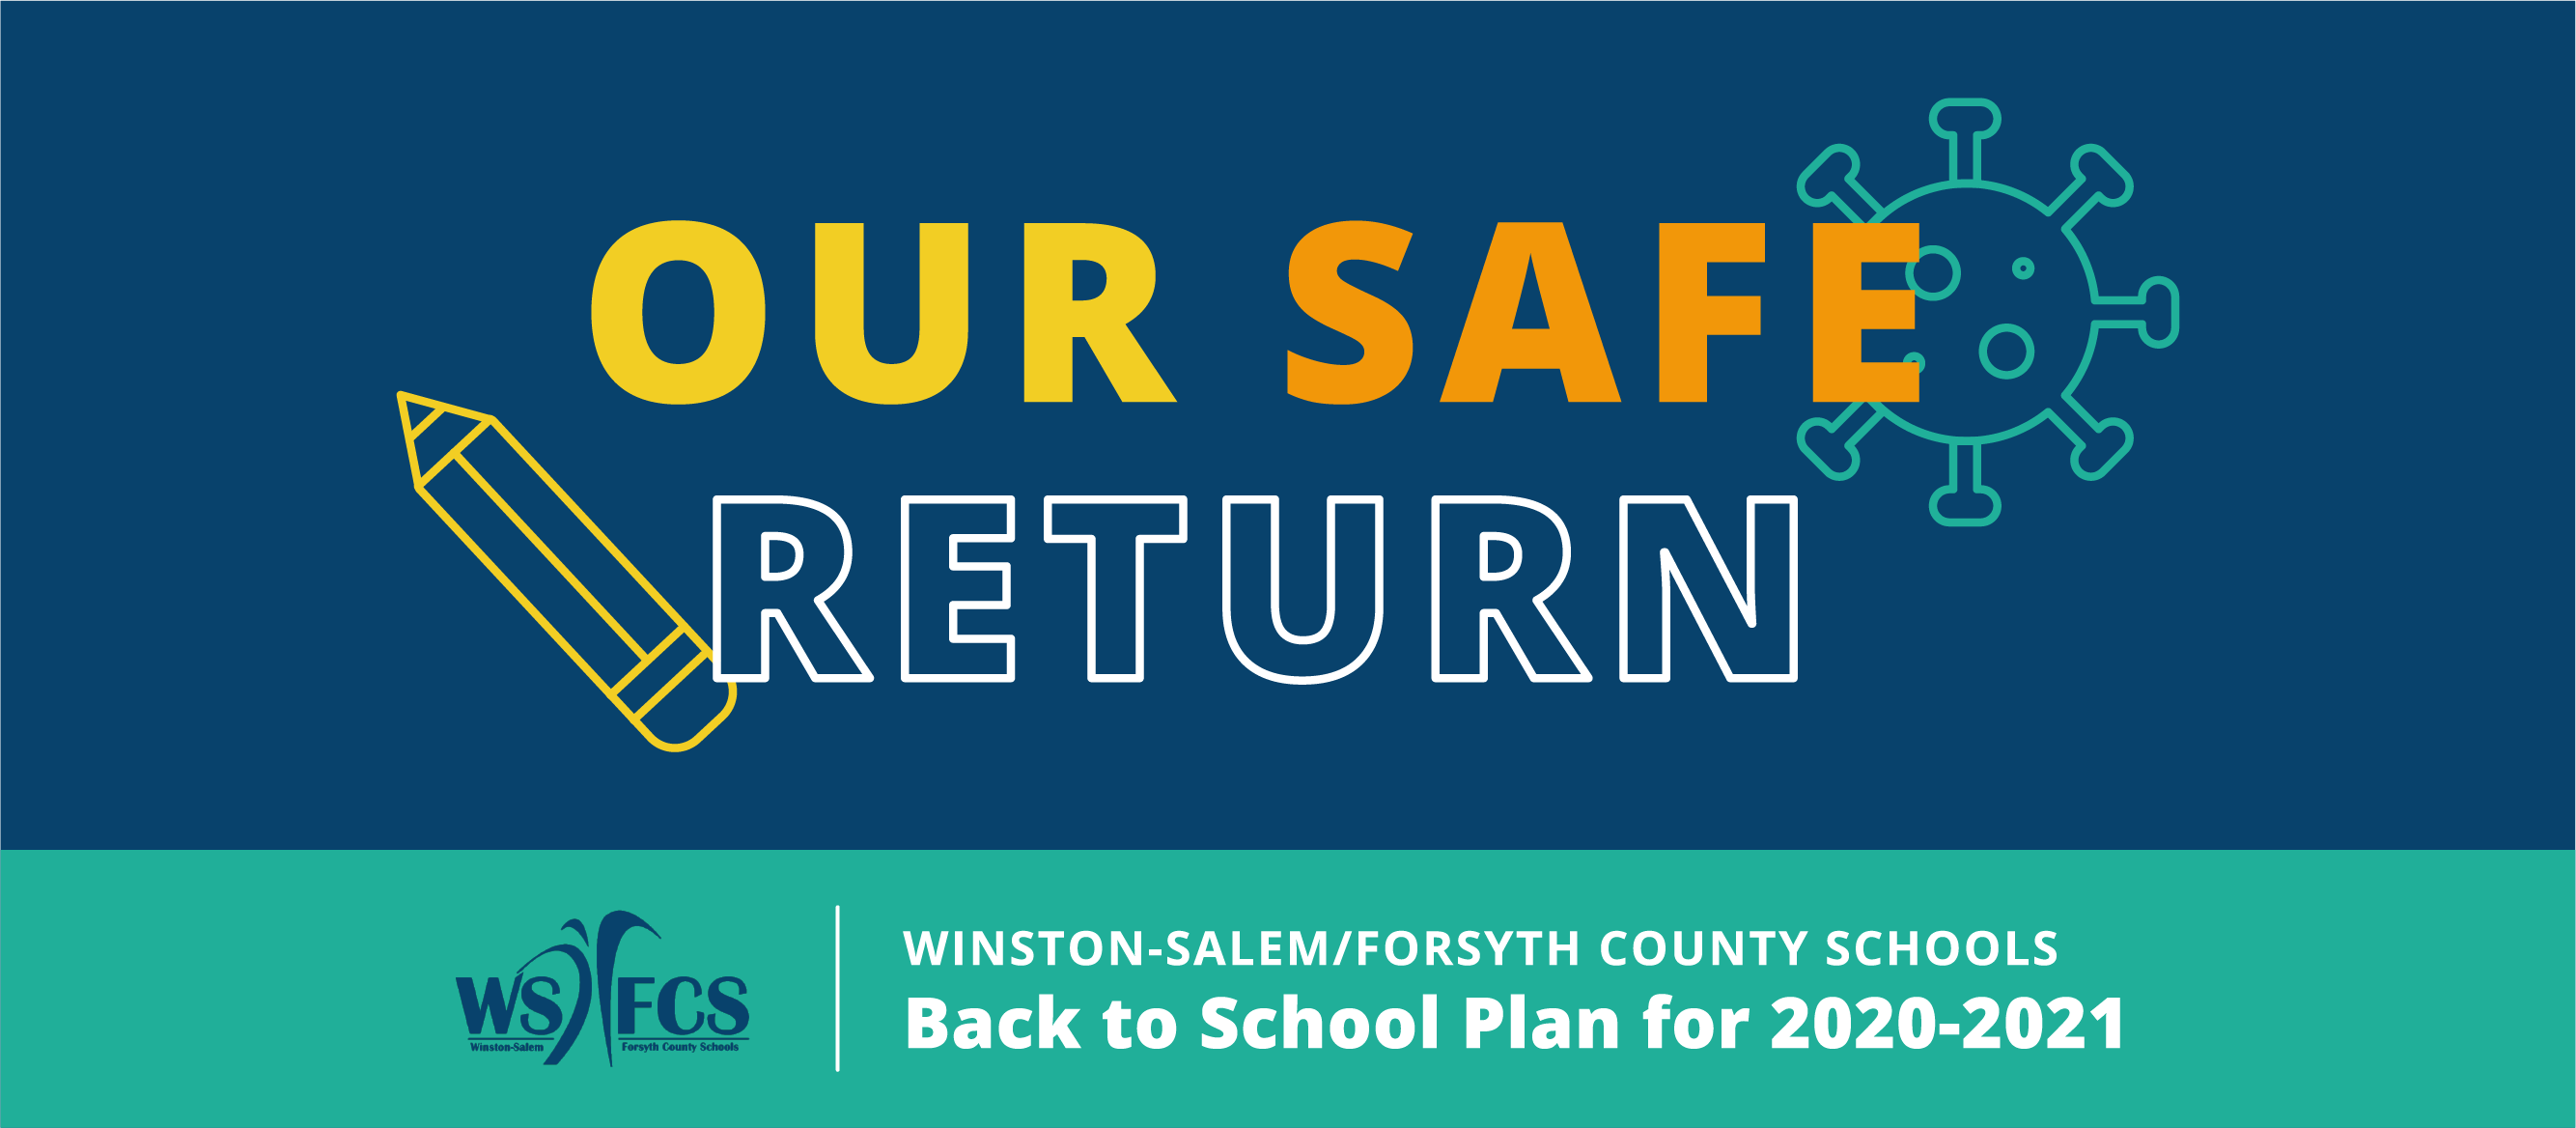 Winston Salem/forsyth County Schools / Front Page Pertaining To Forysth Nc County School Calender